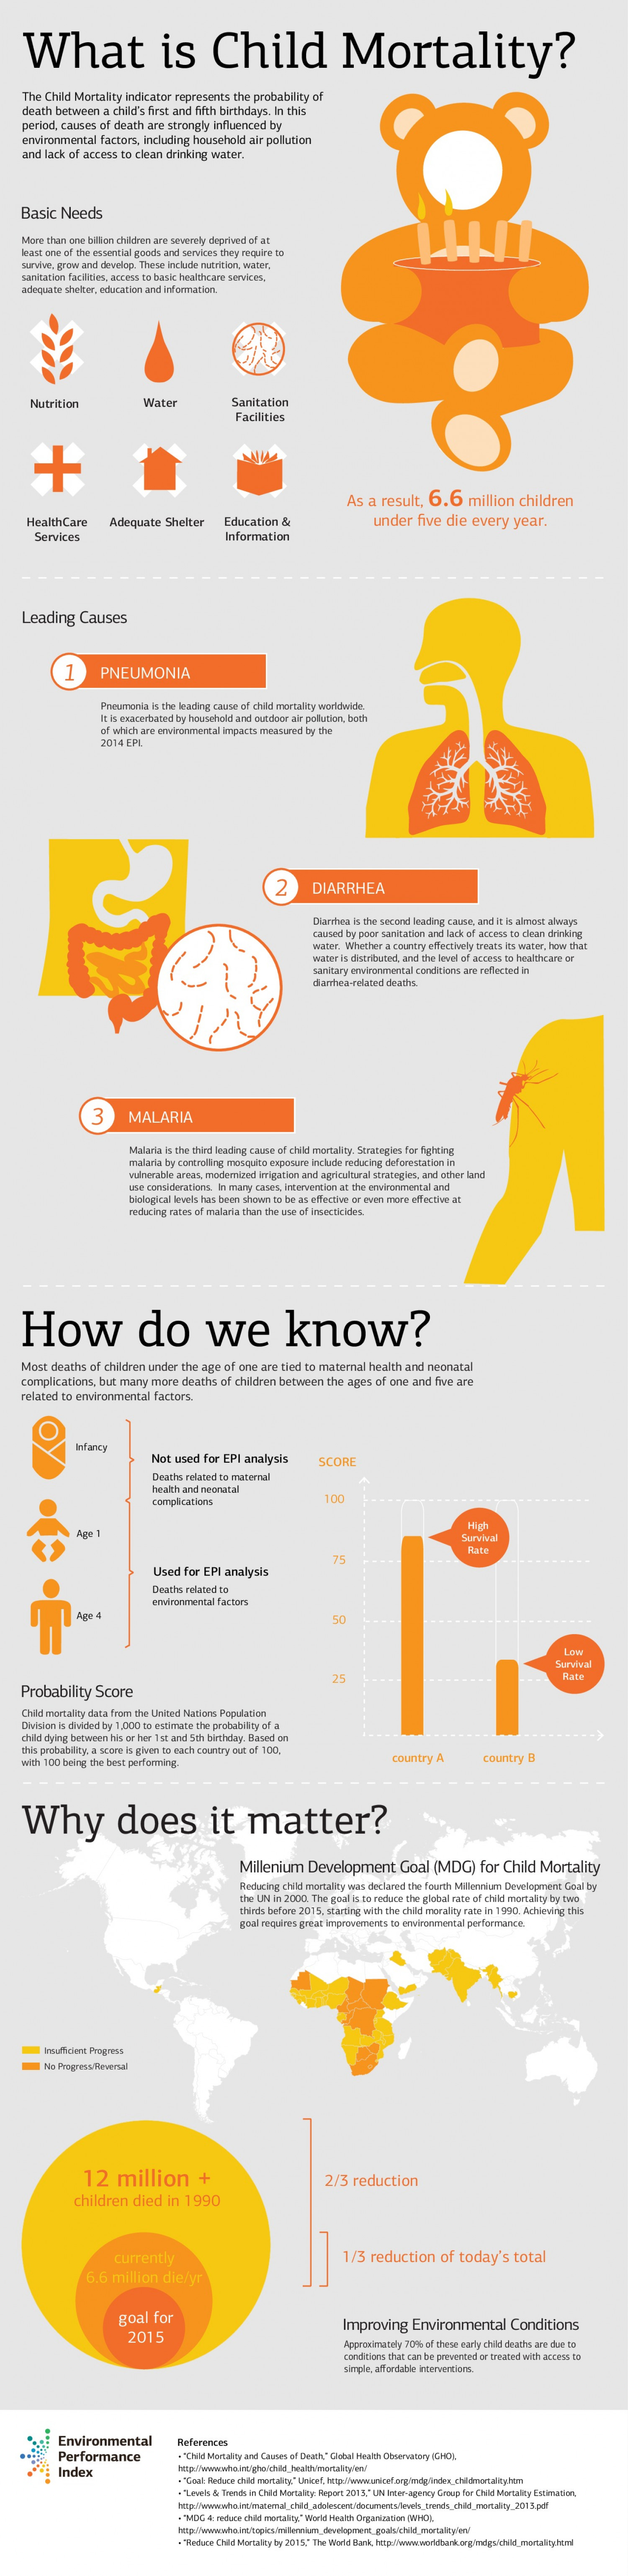 What is a Childhood Mortality Indicator? Infographic